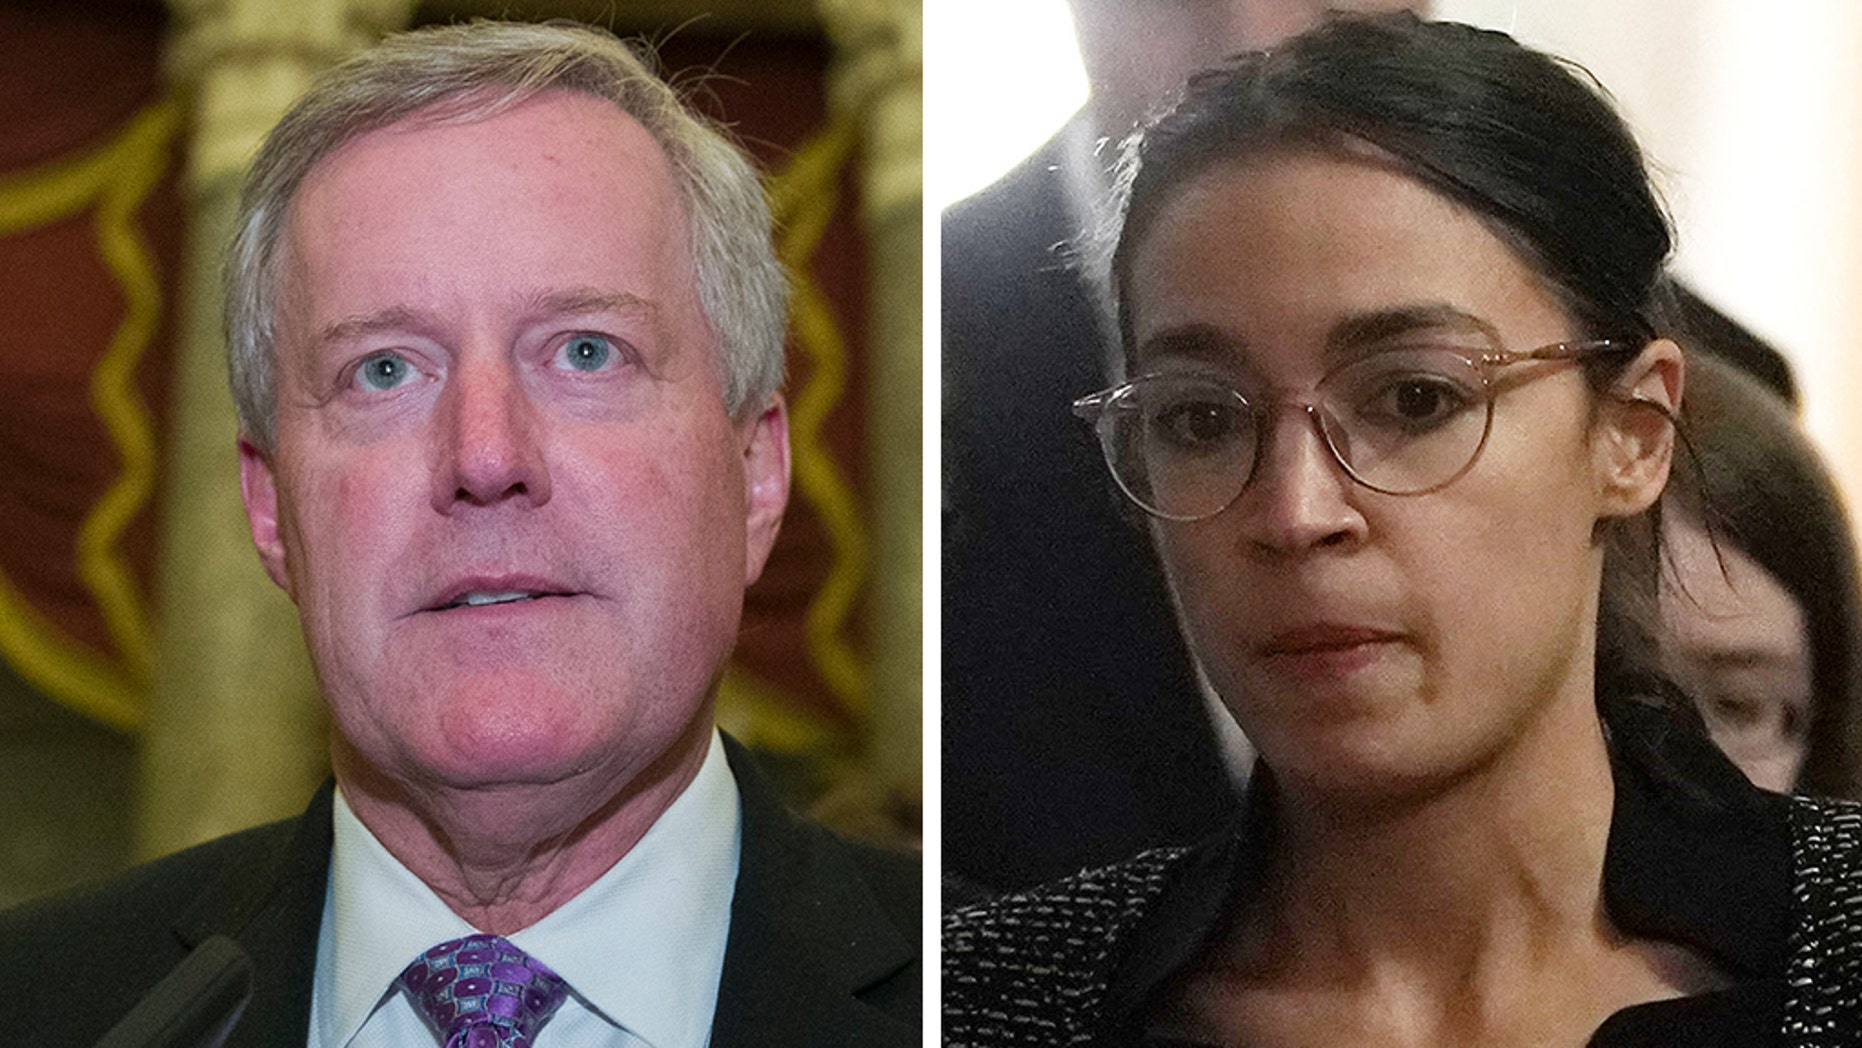 Rep. Mark Meadows, R-N.C., reportedly butted heads with freshman Rep. Alexandria Ocasio-Cortez, D-N.Y., a bit on Tuesday.